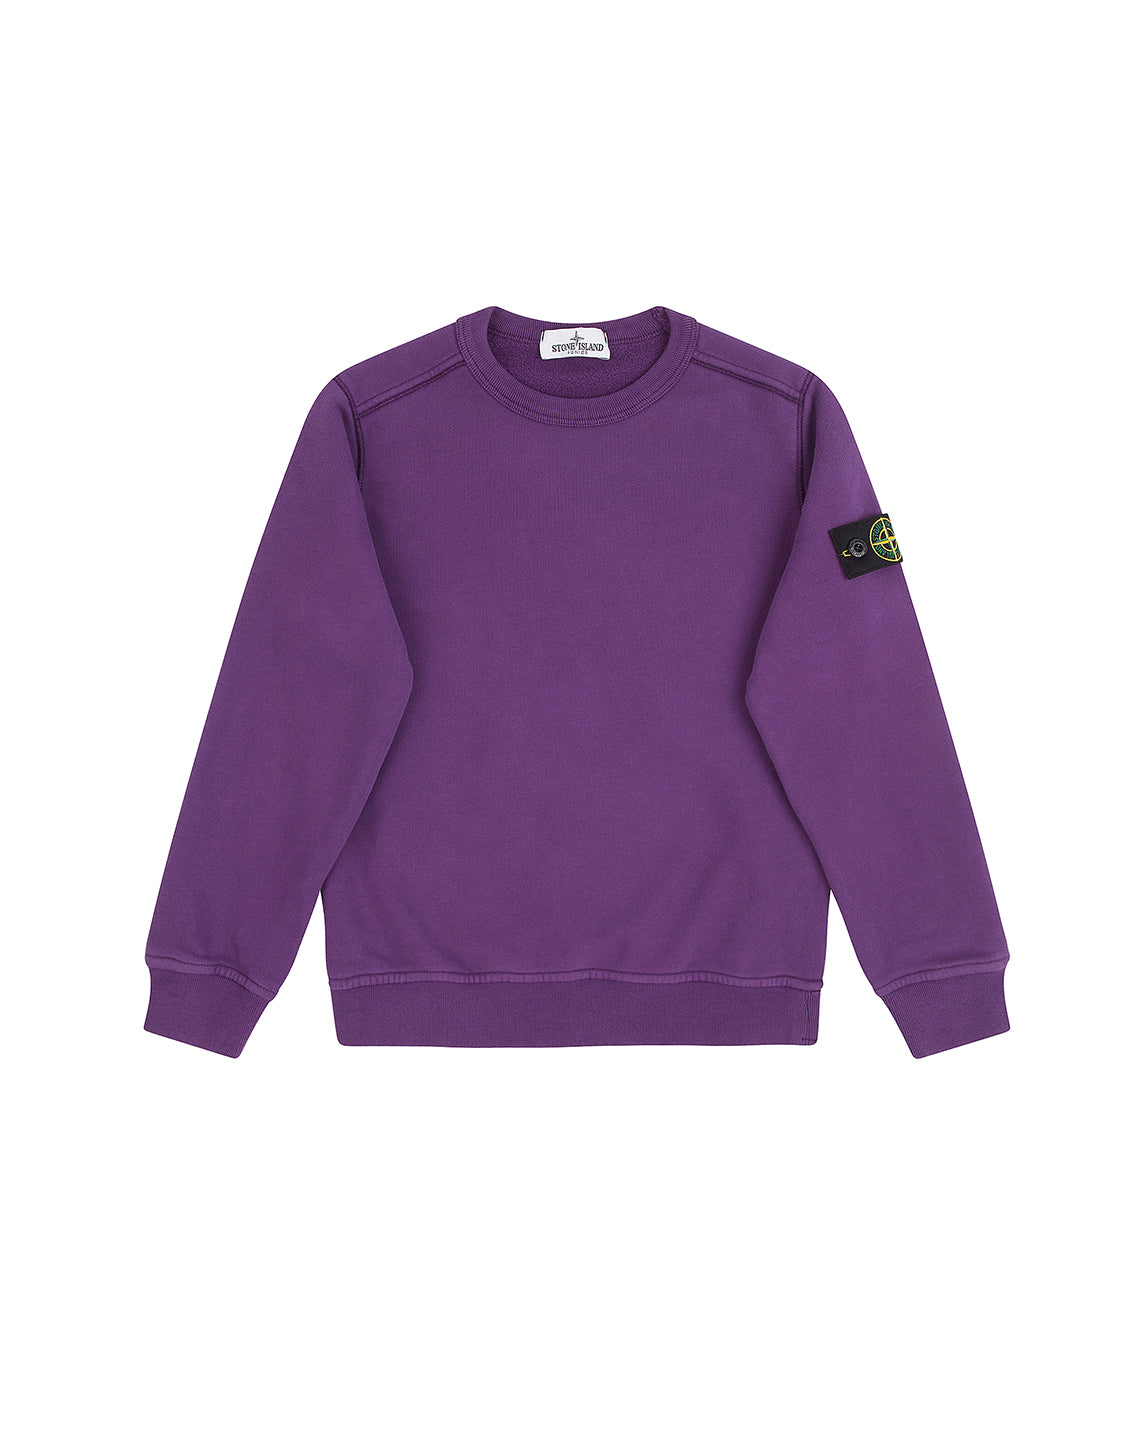 60940 COTTON FLEECE in Purple